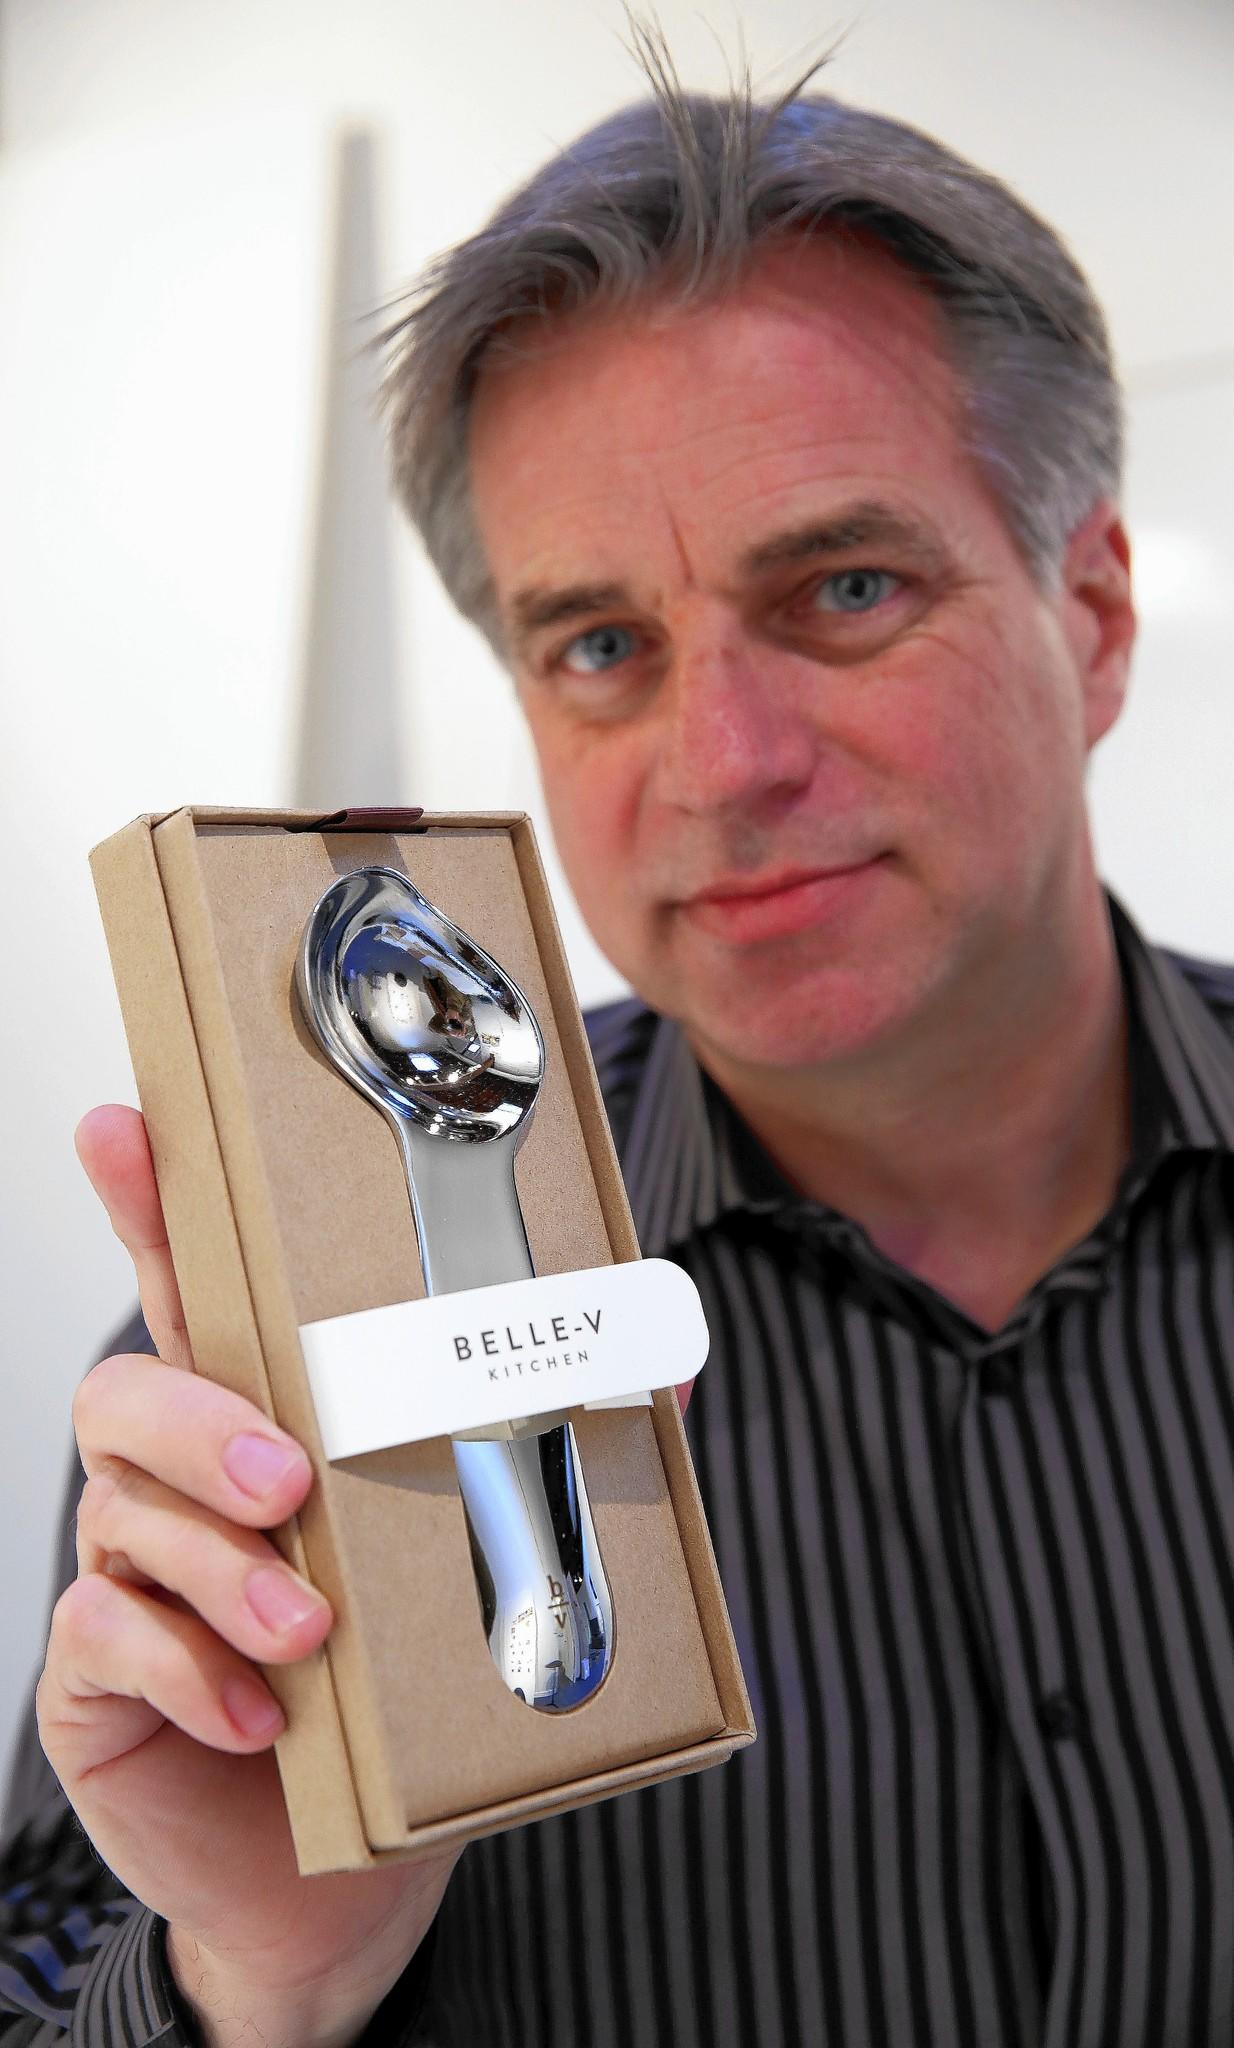 Mark Dziersk, managing director of Lunar, holds the Belle-V ice cream scoop that his company designed and that will be featured at the International Home and Housewares Show at McCormick Place.